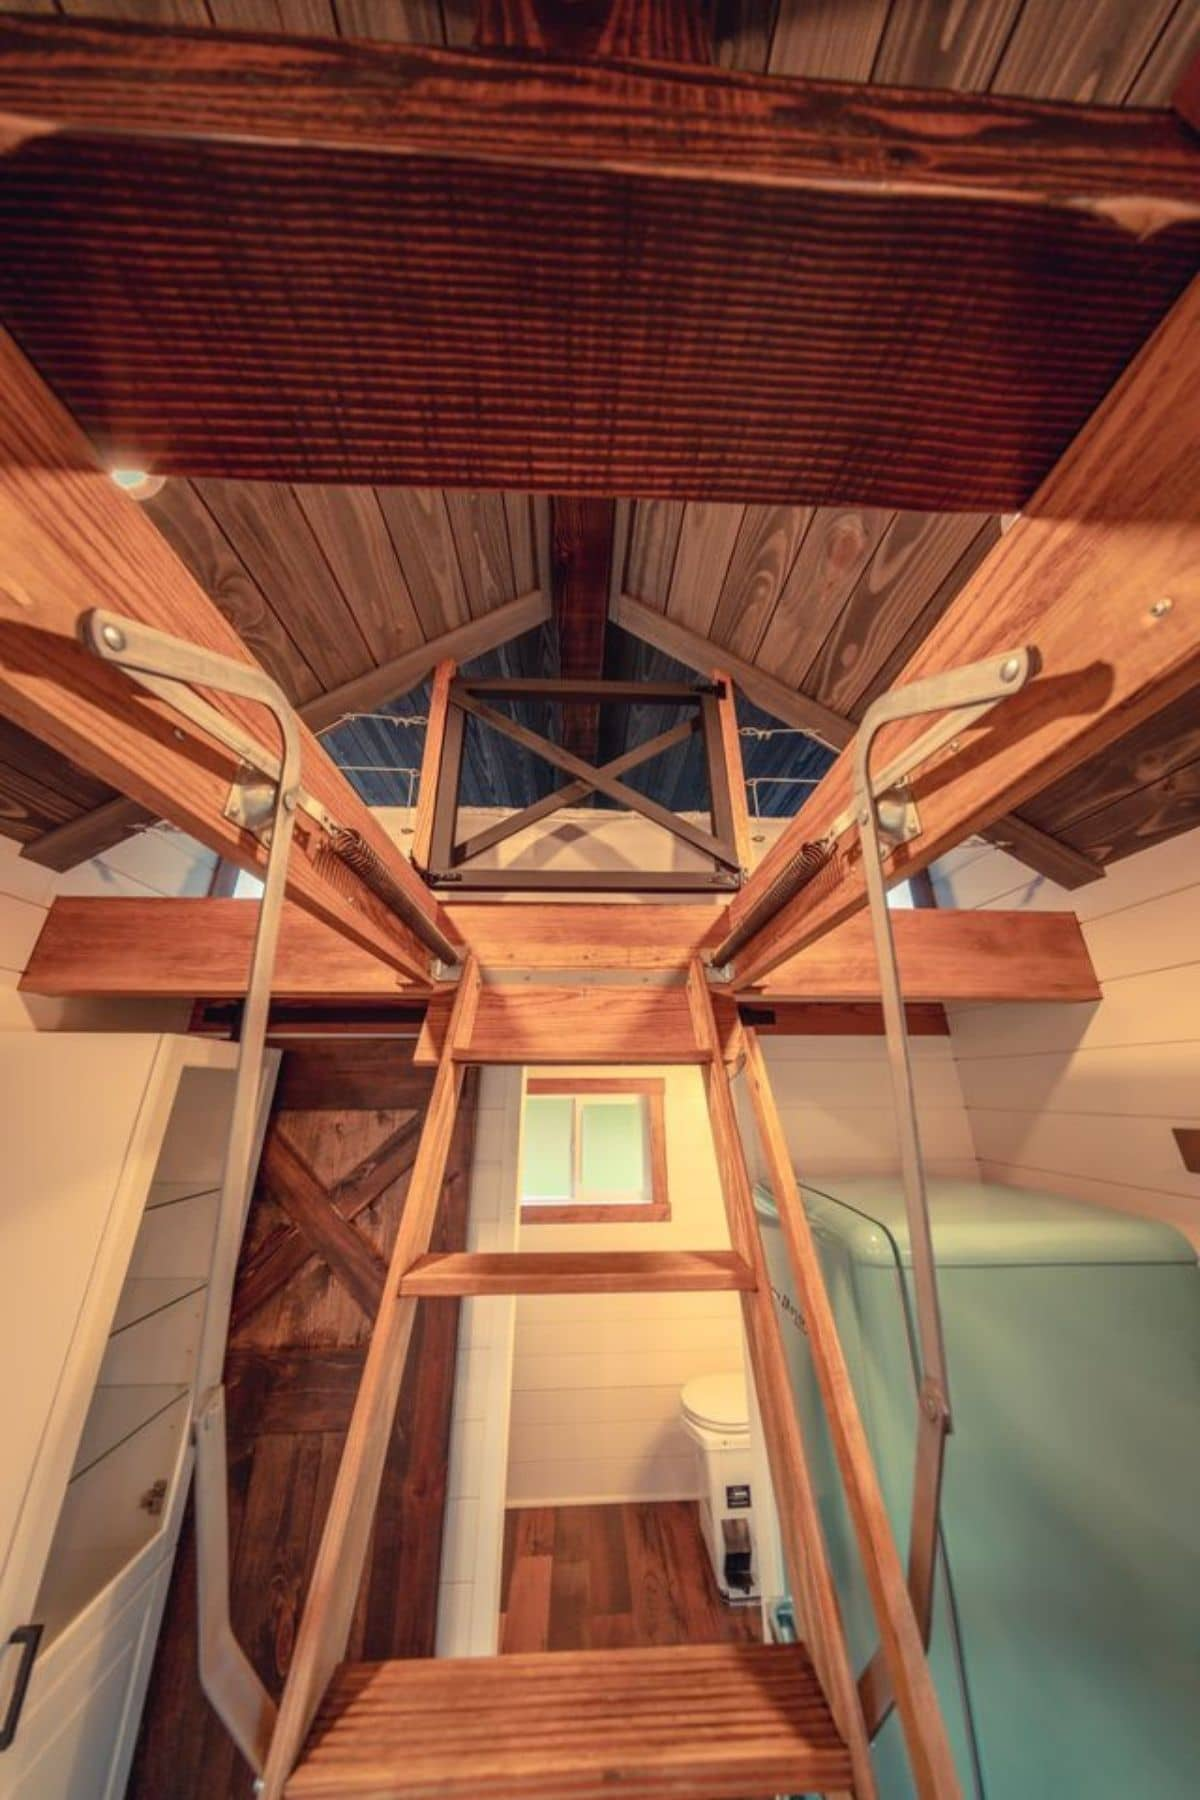 View looking up ladder to loft in tiny home with dark wood trim